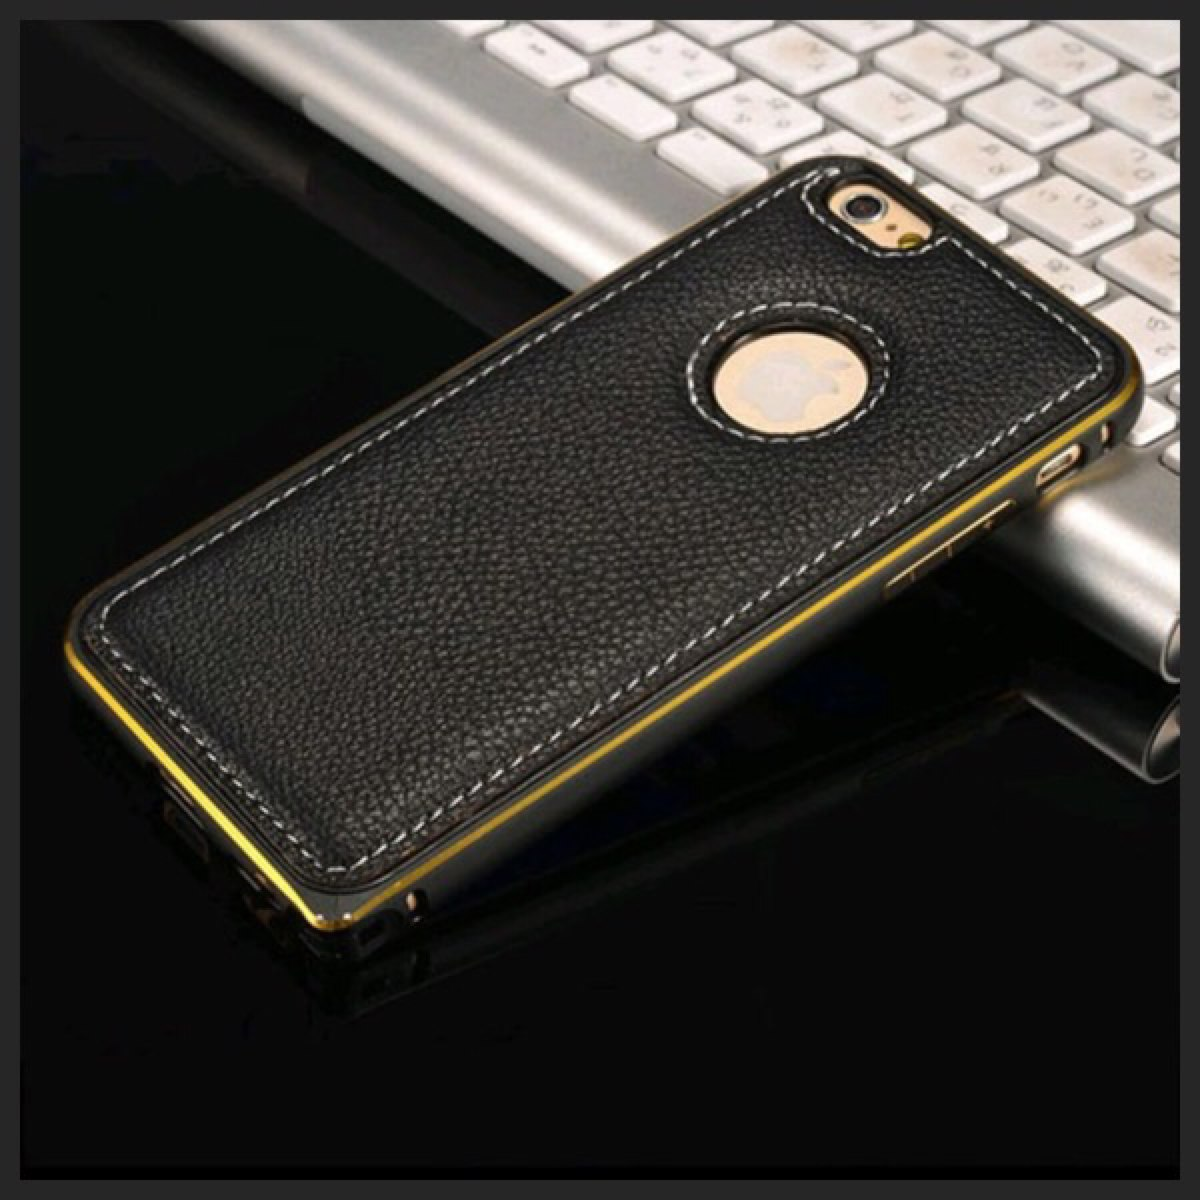 e1077df67ff Luxury Case Funda Bumper Aluminio Piel iPhone 6 6s - $ 190.00 en ...